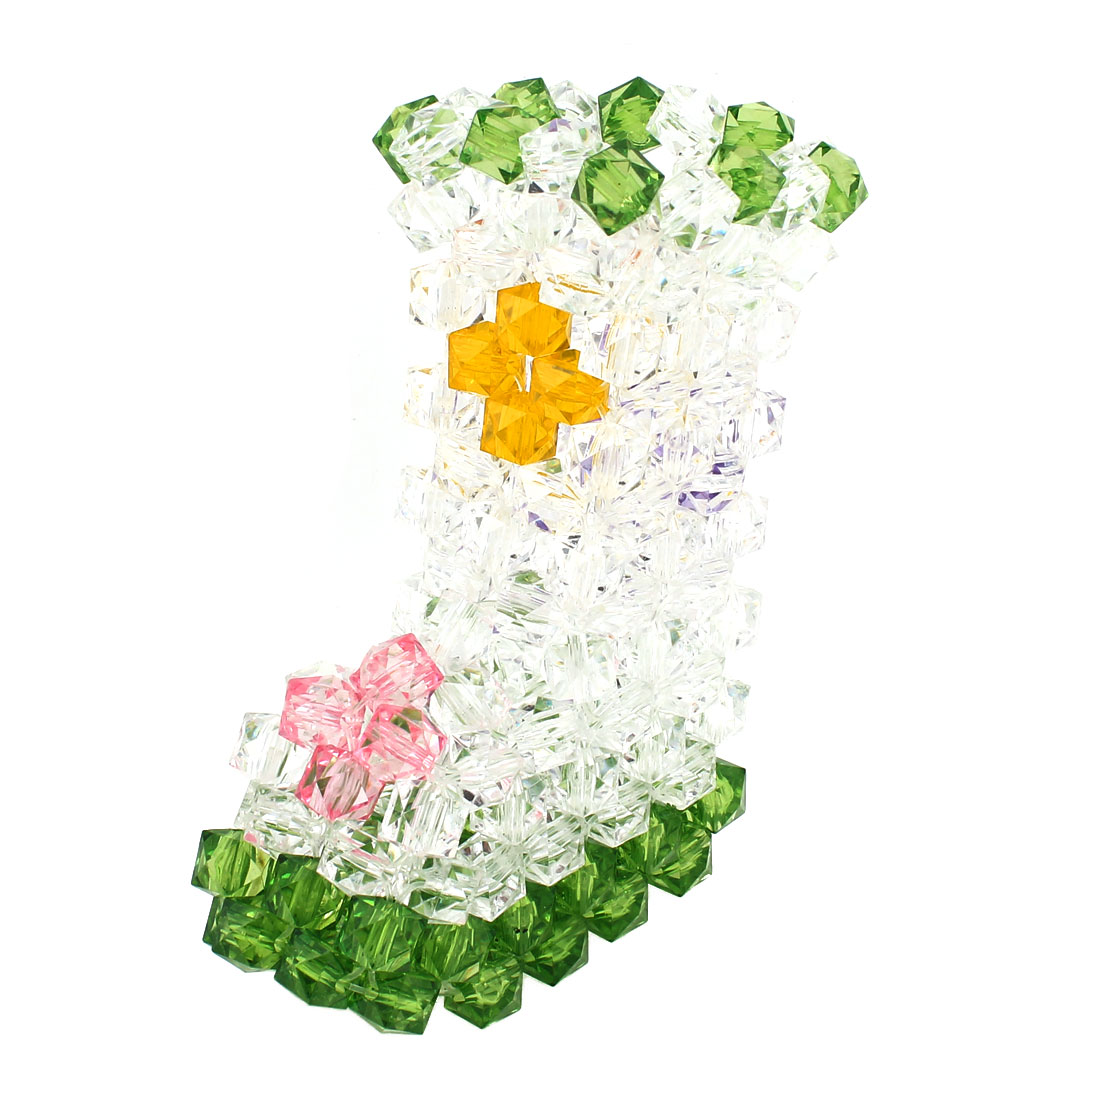 Green Clear Boot Shaped Handcraft Plastic Crystal Beads Vase Craft Room Decoration 5.1""